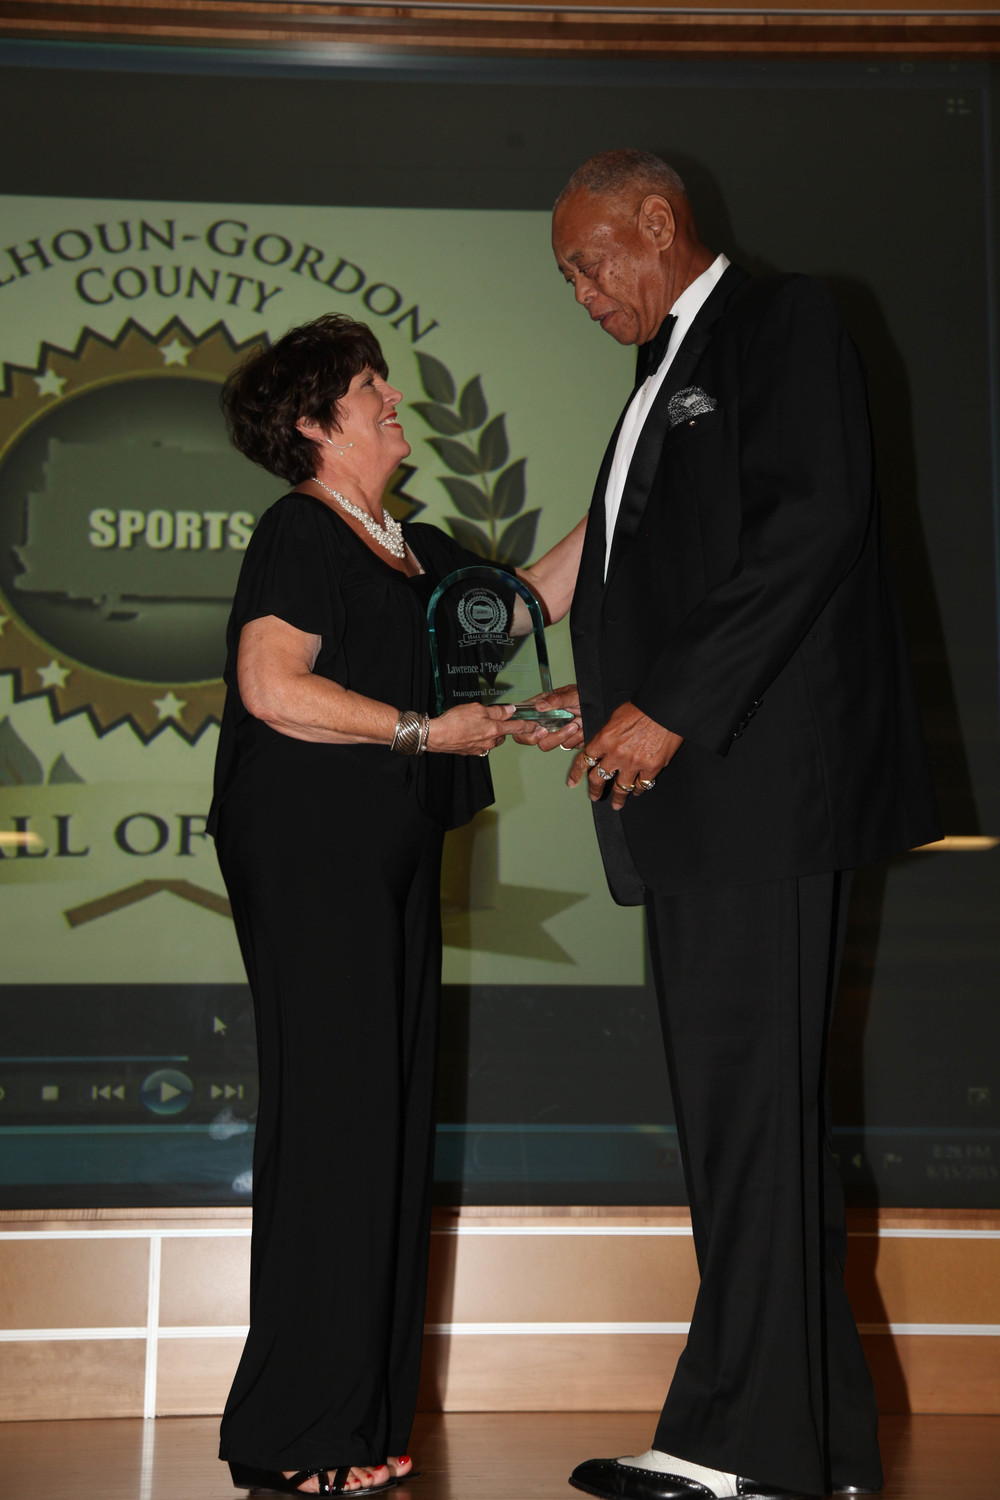 Calhoun-Gordon-County-Sports-Hall-of-Fame-2015-087.jpg